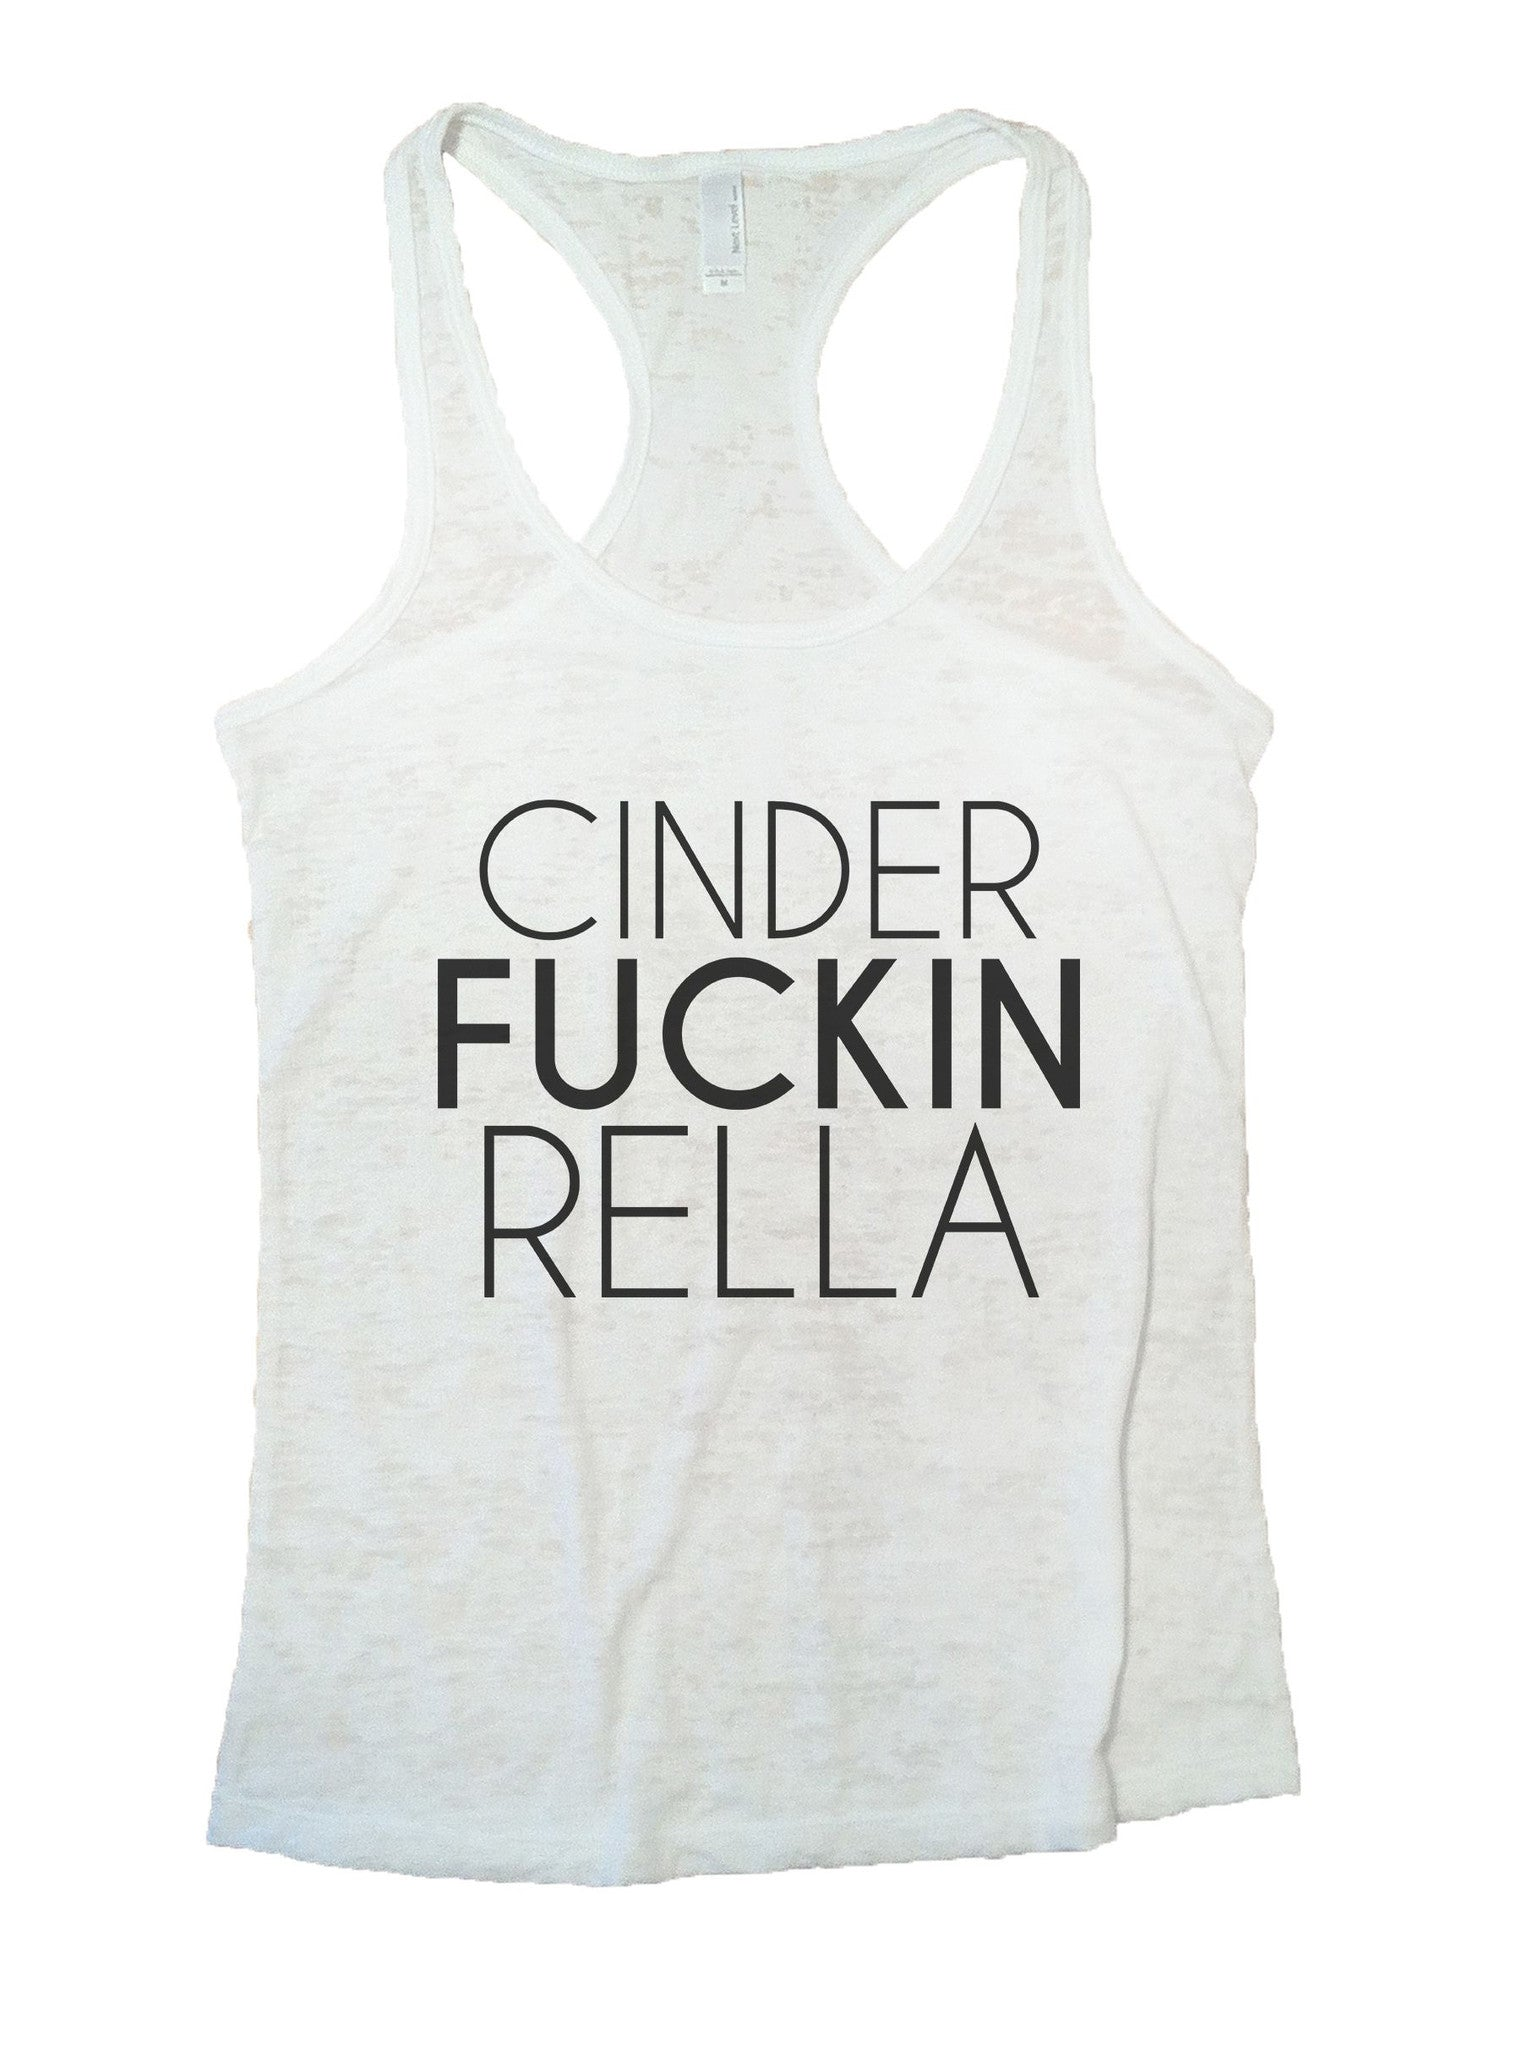 Cinder Fuckin Rella Burnout Tank Top By BurnoutTankTops.com - 1113 - Funny Shirts Tank Tops Burnouts and Triblends  - 6